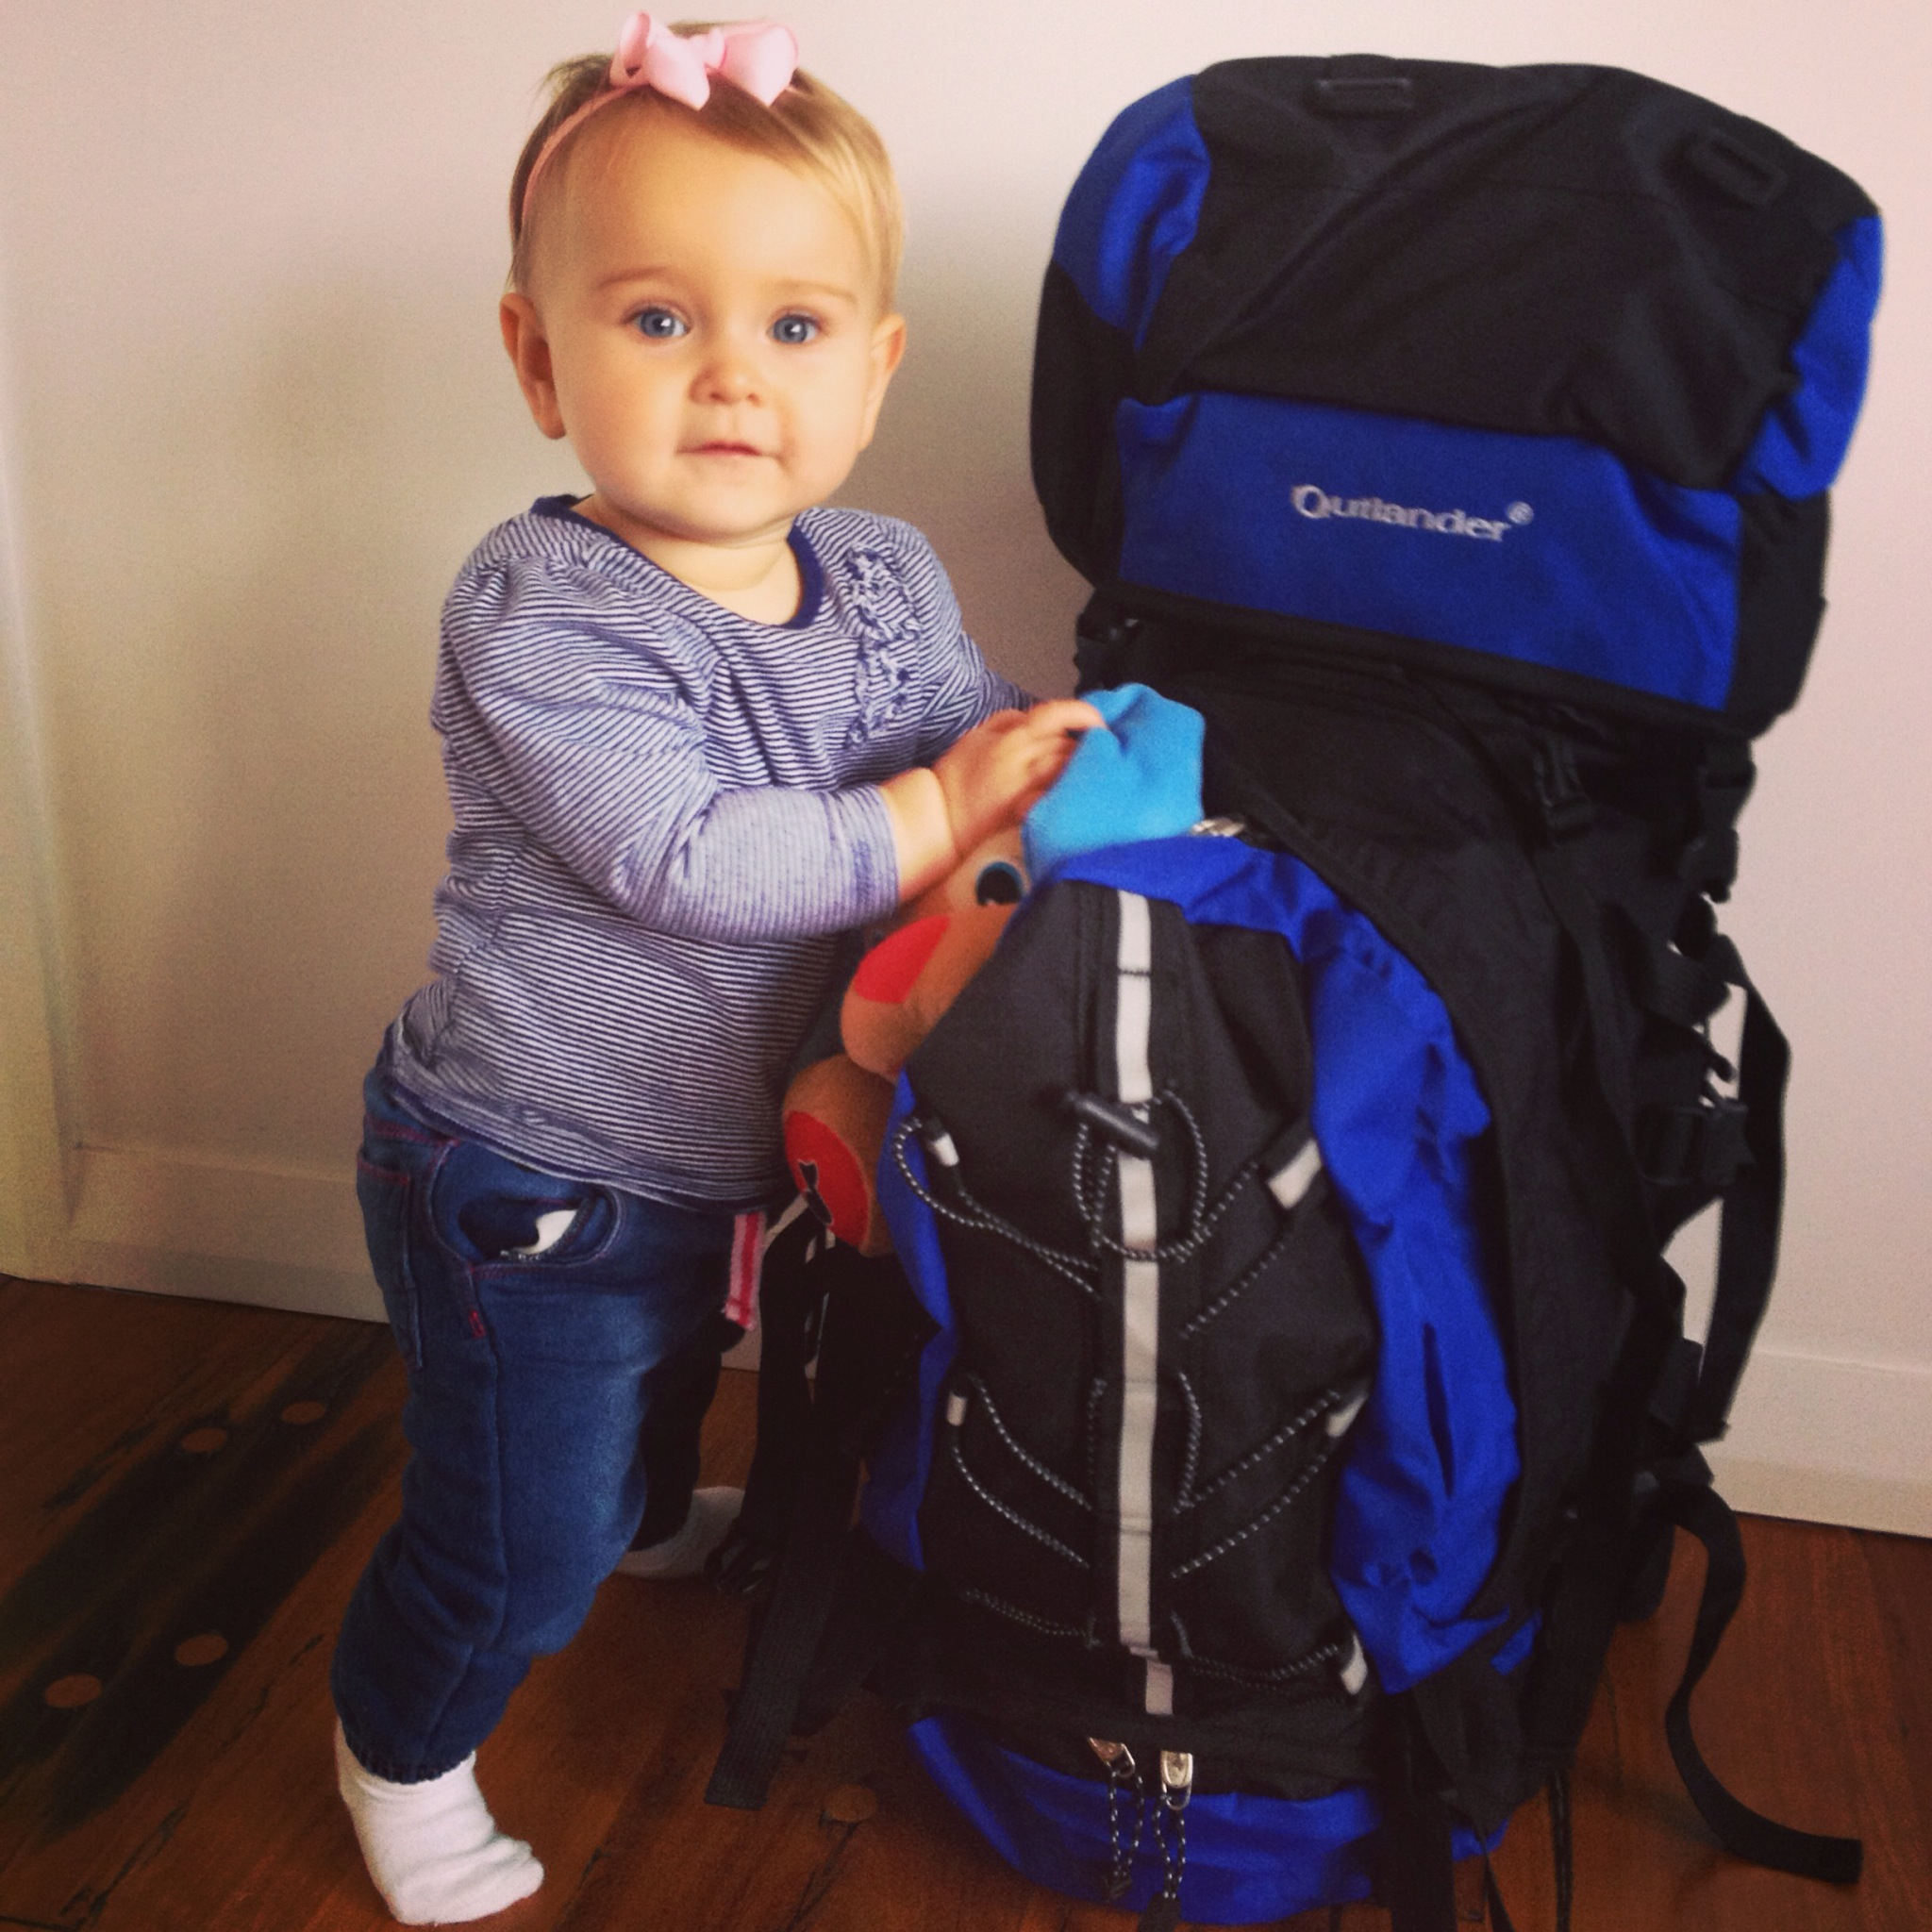 Meet backpacking baby Esmé and her travel mad mum